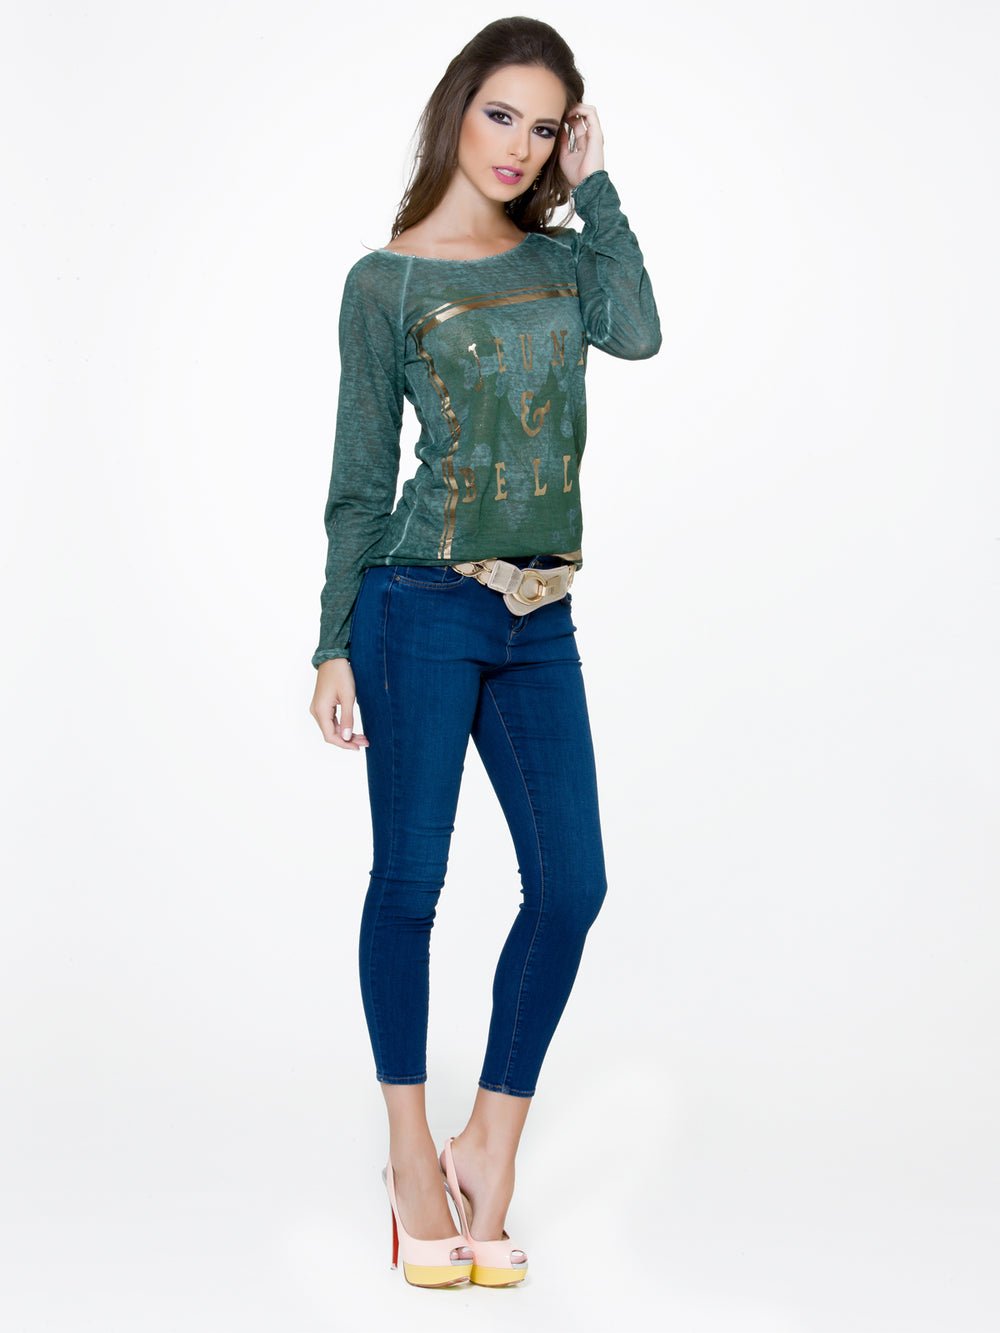 Navy Long Sleeves Top, CJF - elilhaam.com